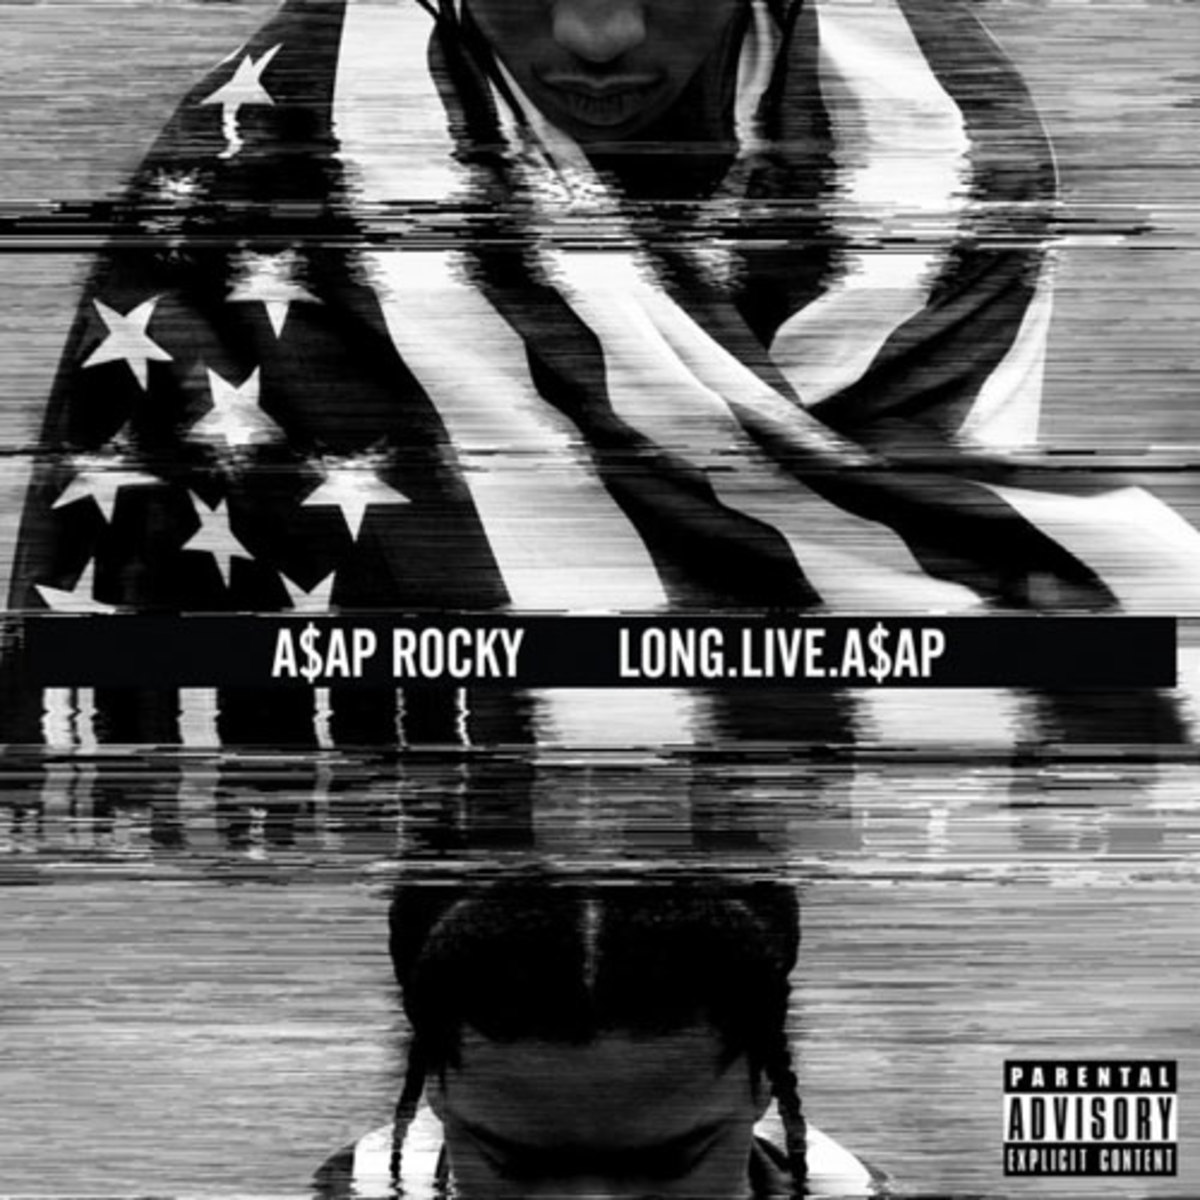 asaprocky-livelong.jpg